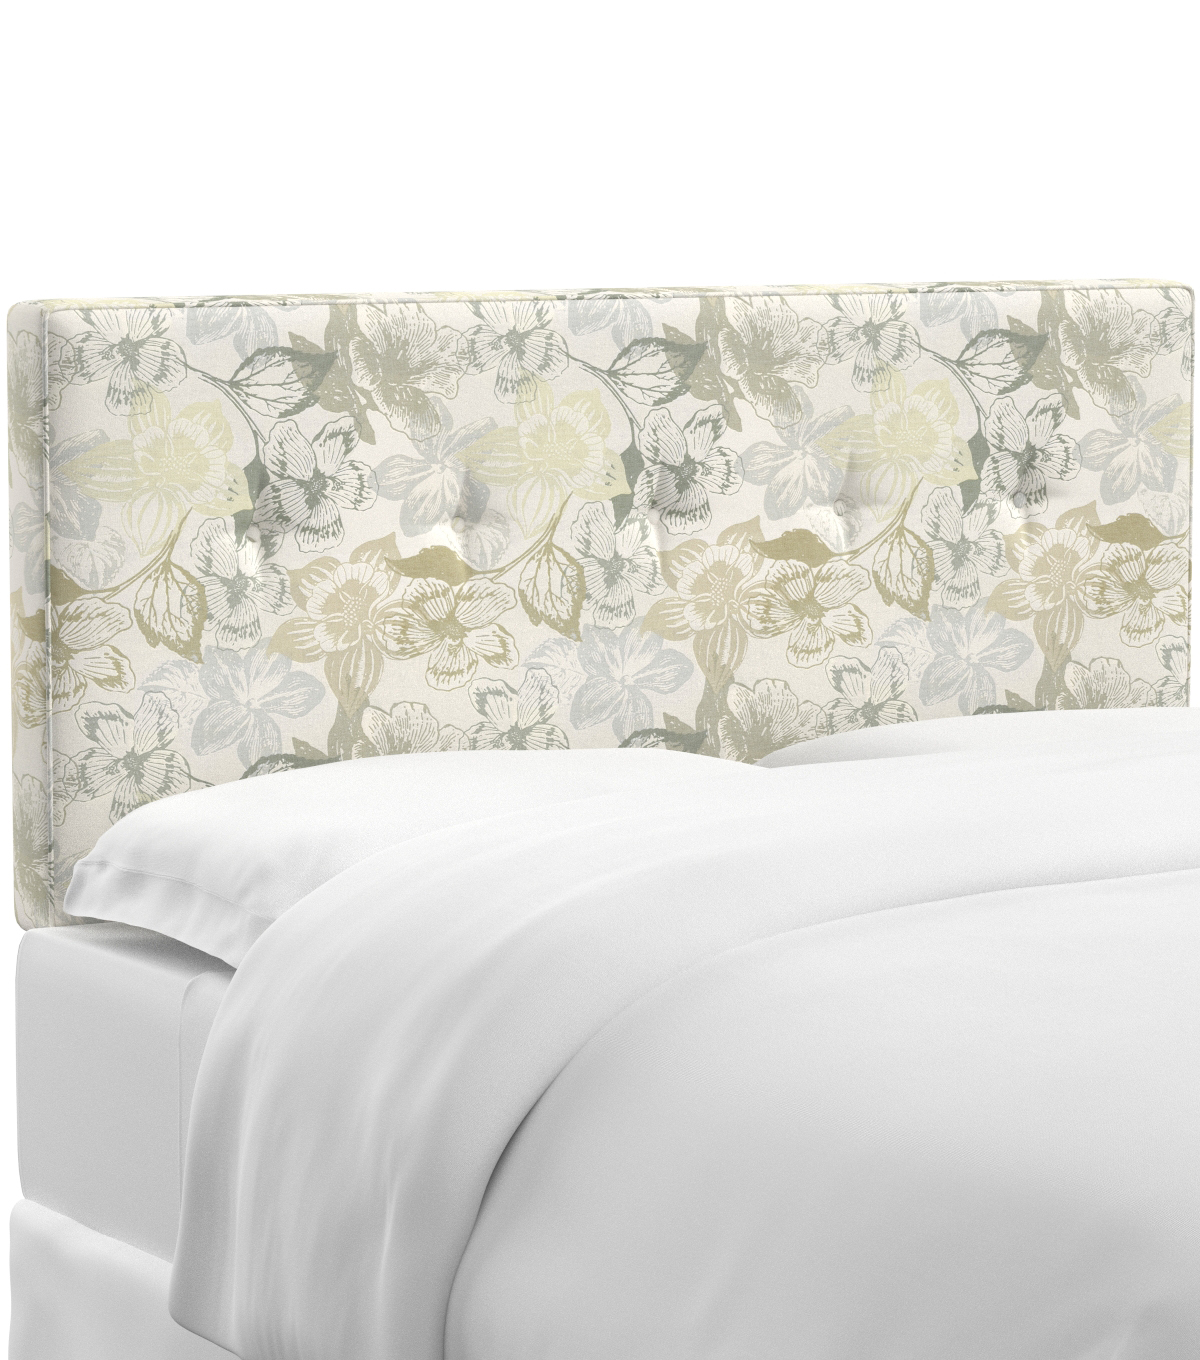 Skyline Furniture Five Button Headboard-King, Peyton Linen